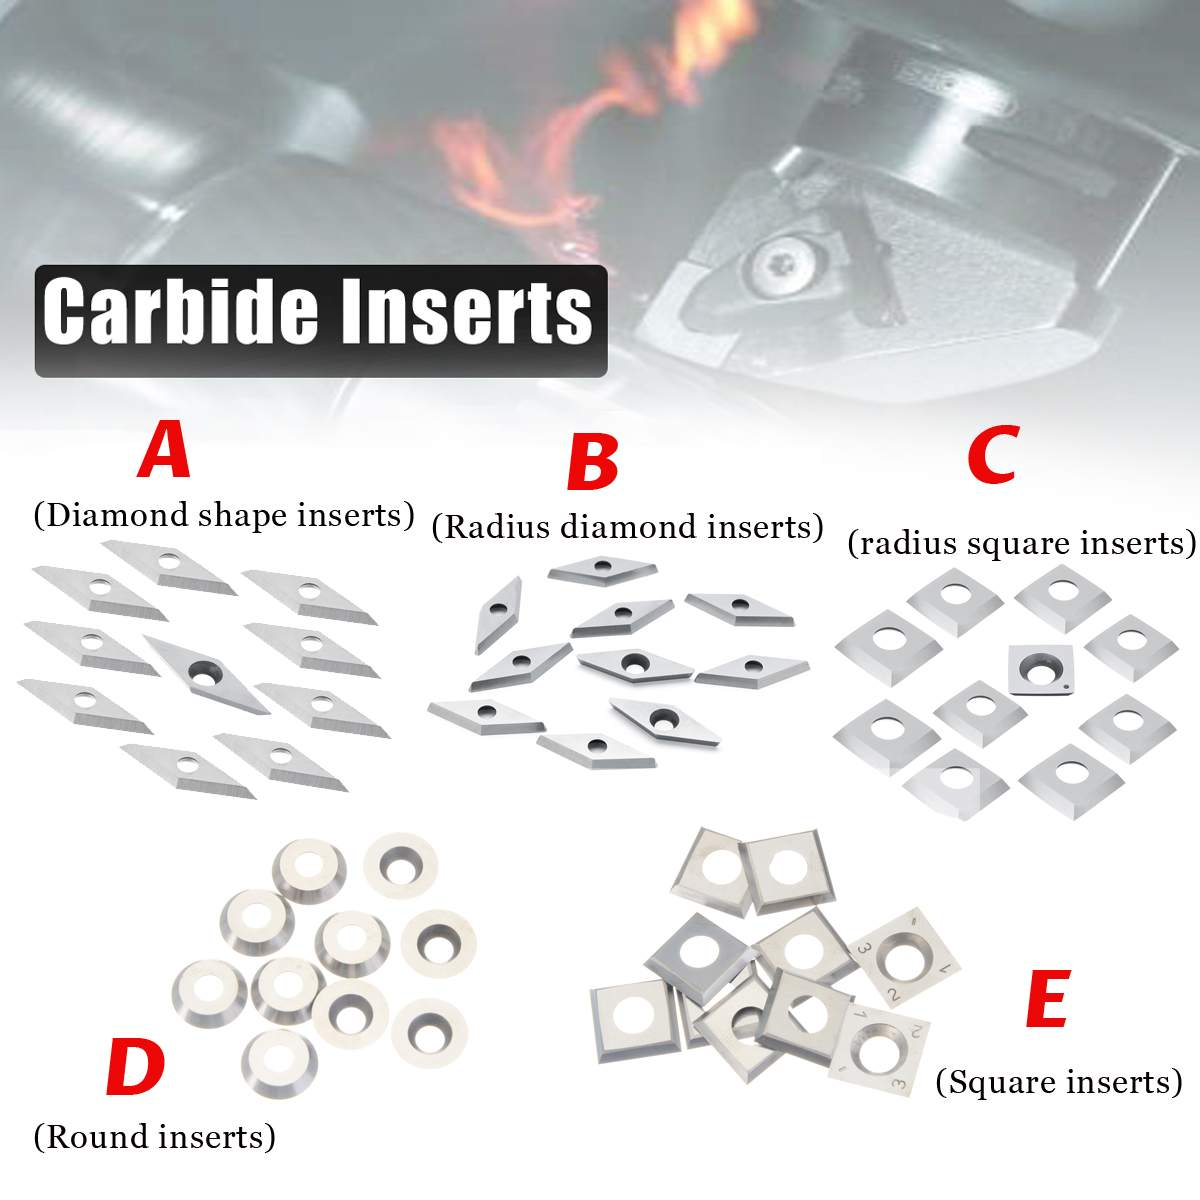 New 10pcs Carbide Inserts For Lathe Turning Tool Diamond Shape/Radius Diamond/Radius Square/Round/Square Inserts